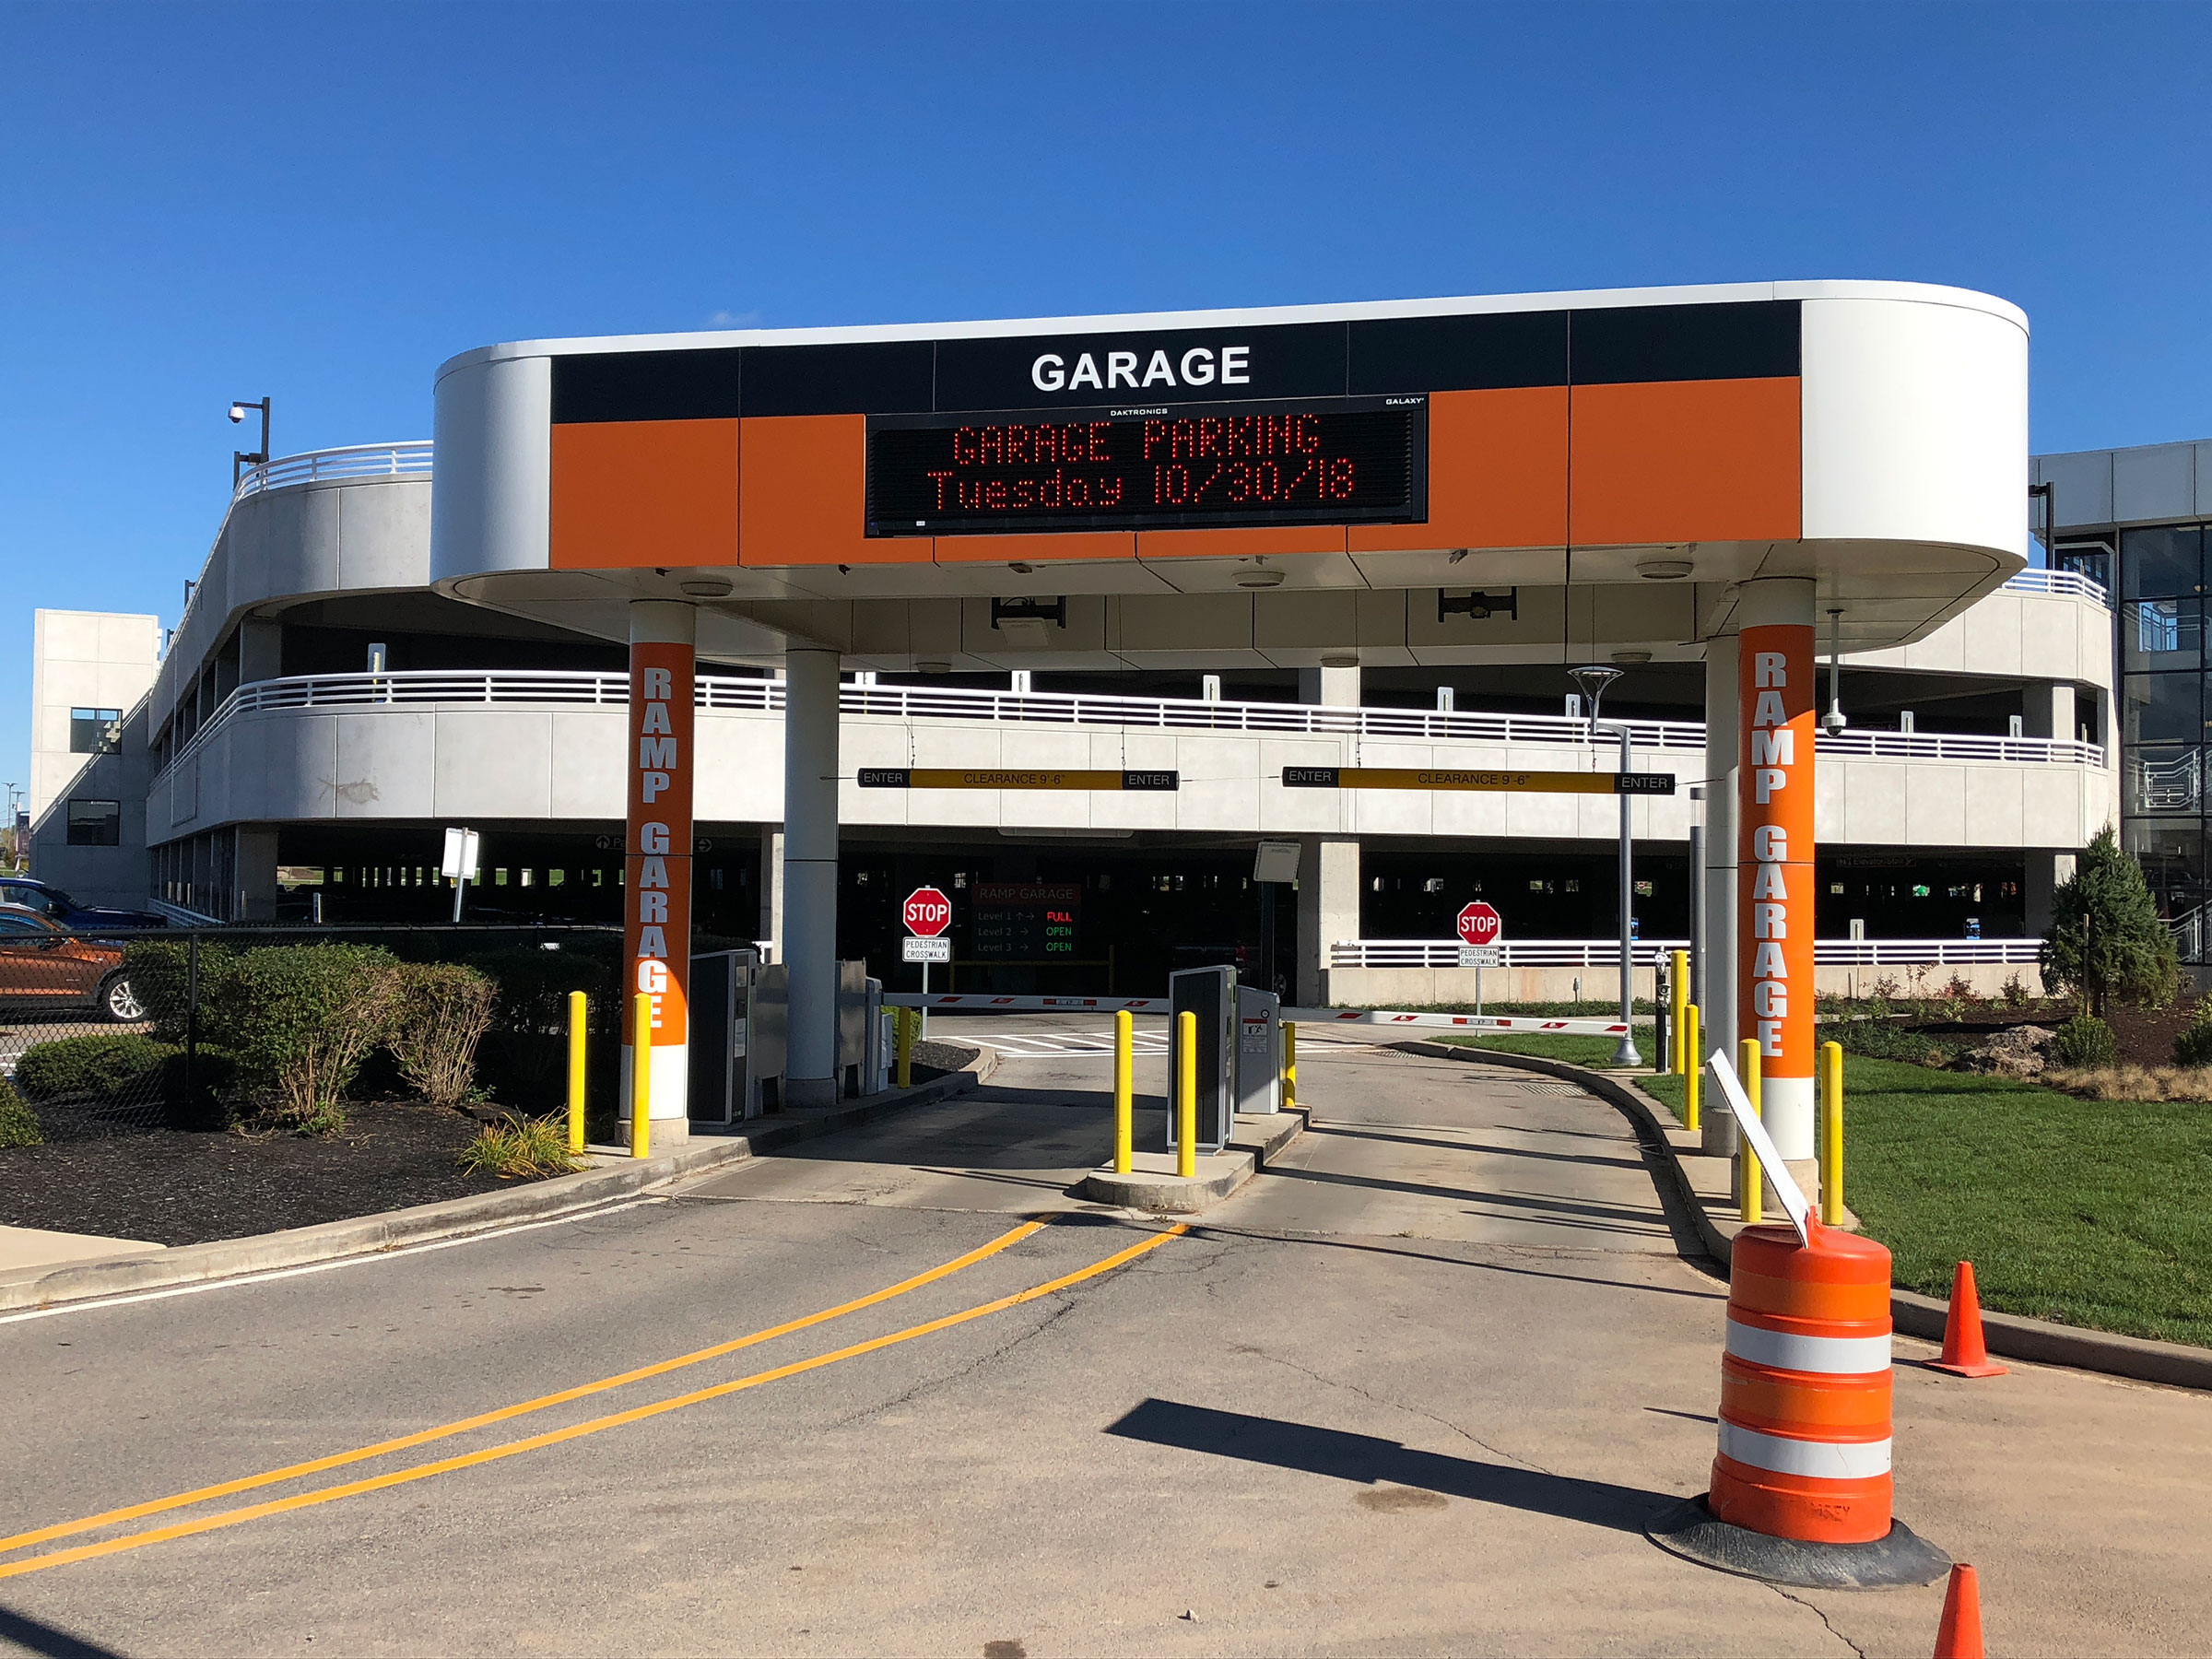 Image of Garage Parking